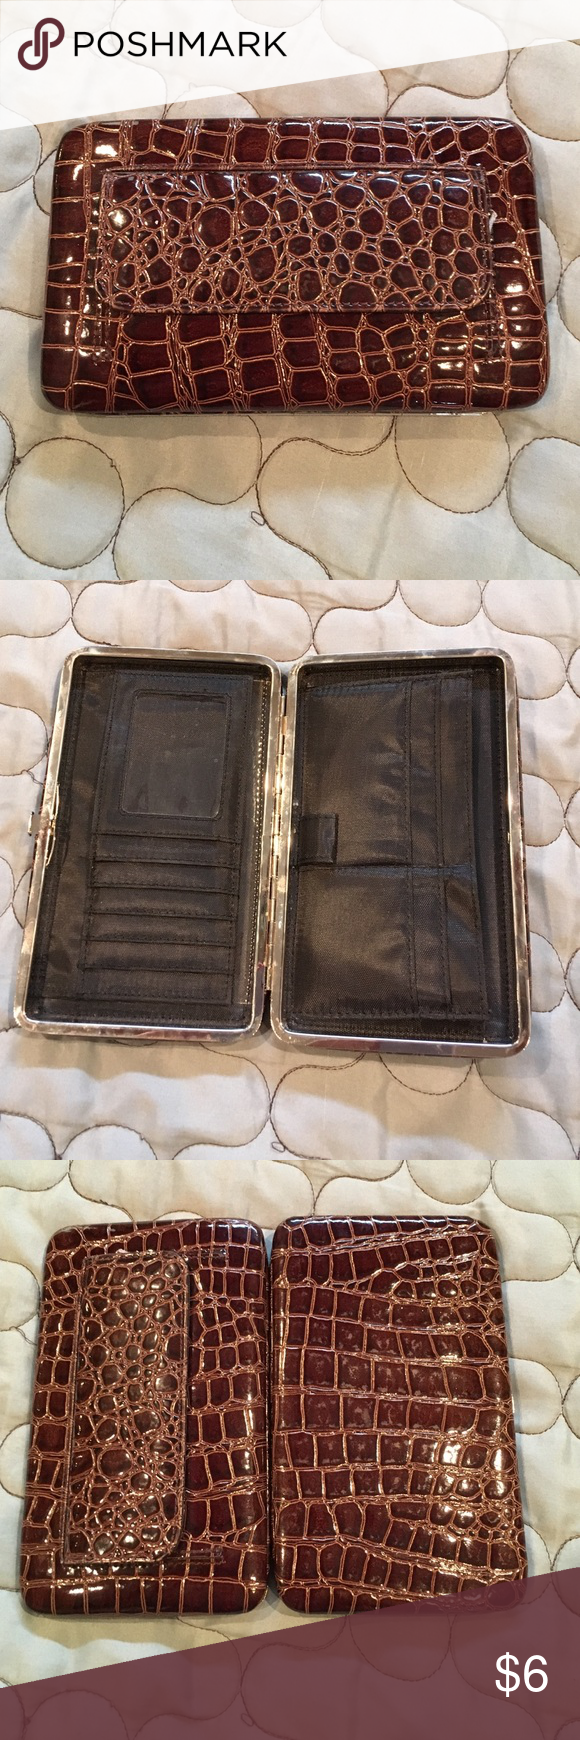 Brown patent leather snakeskin print wallet. Gently used for a few months. Still in good condition. Ready for its next adventures! Bags Wallets